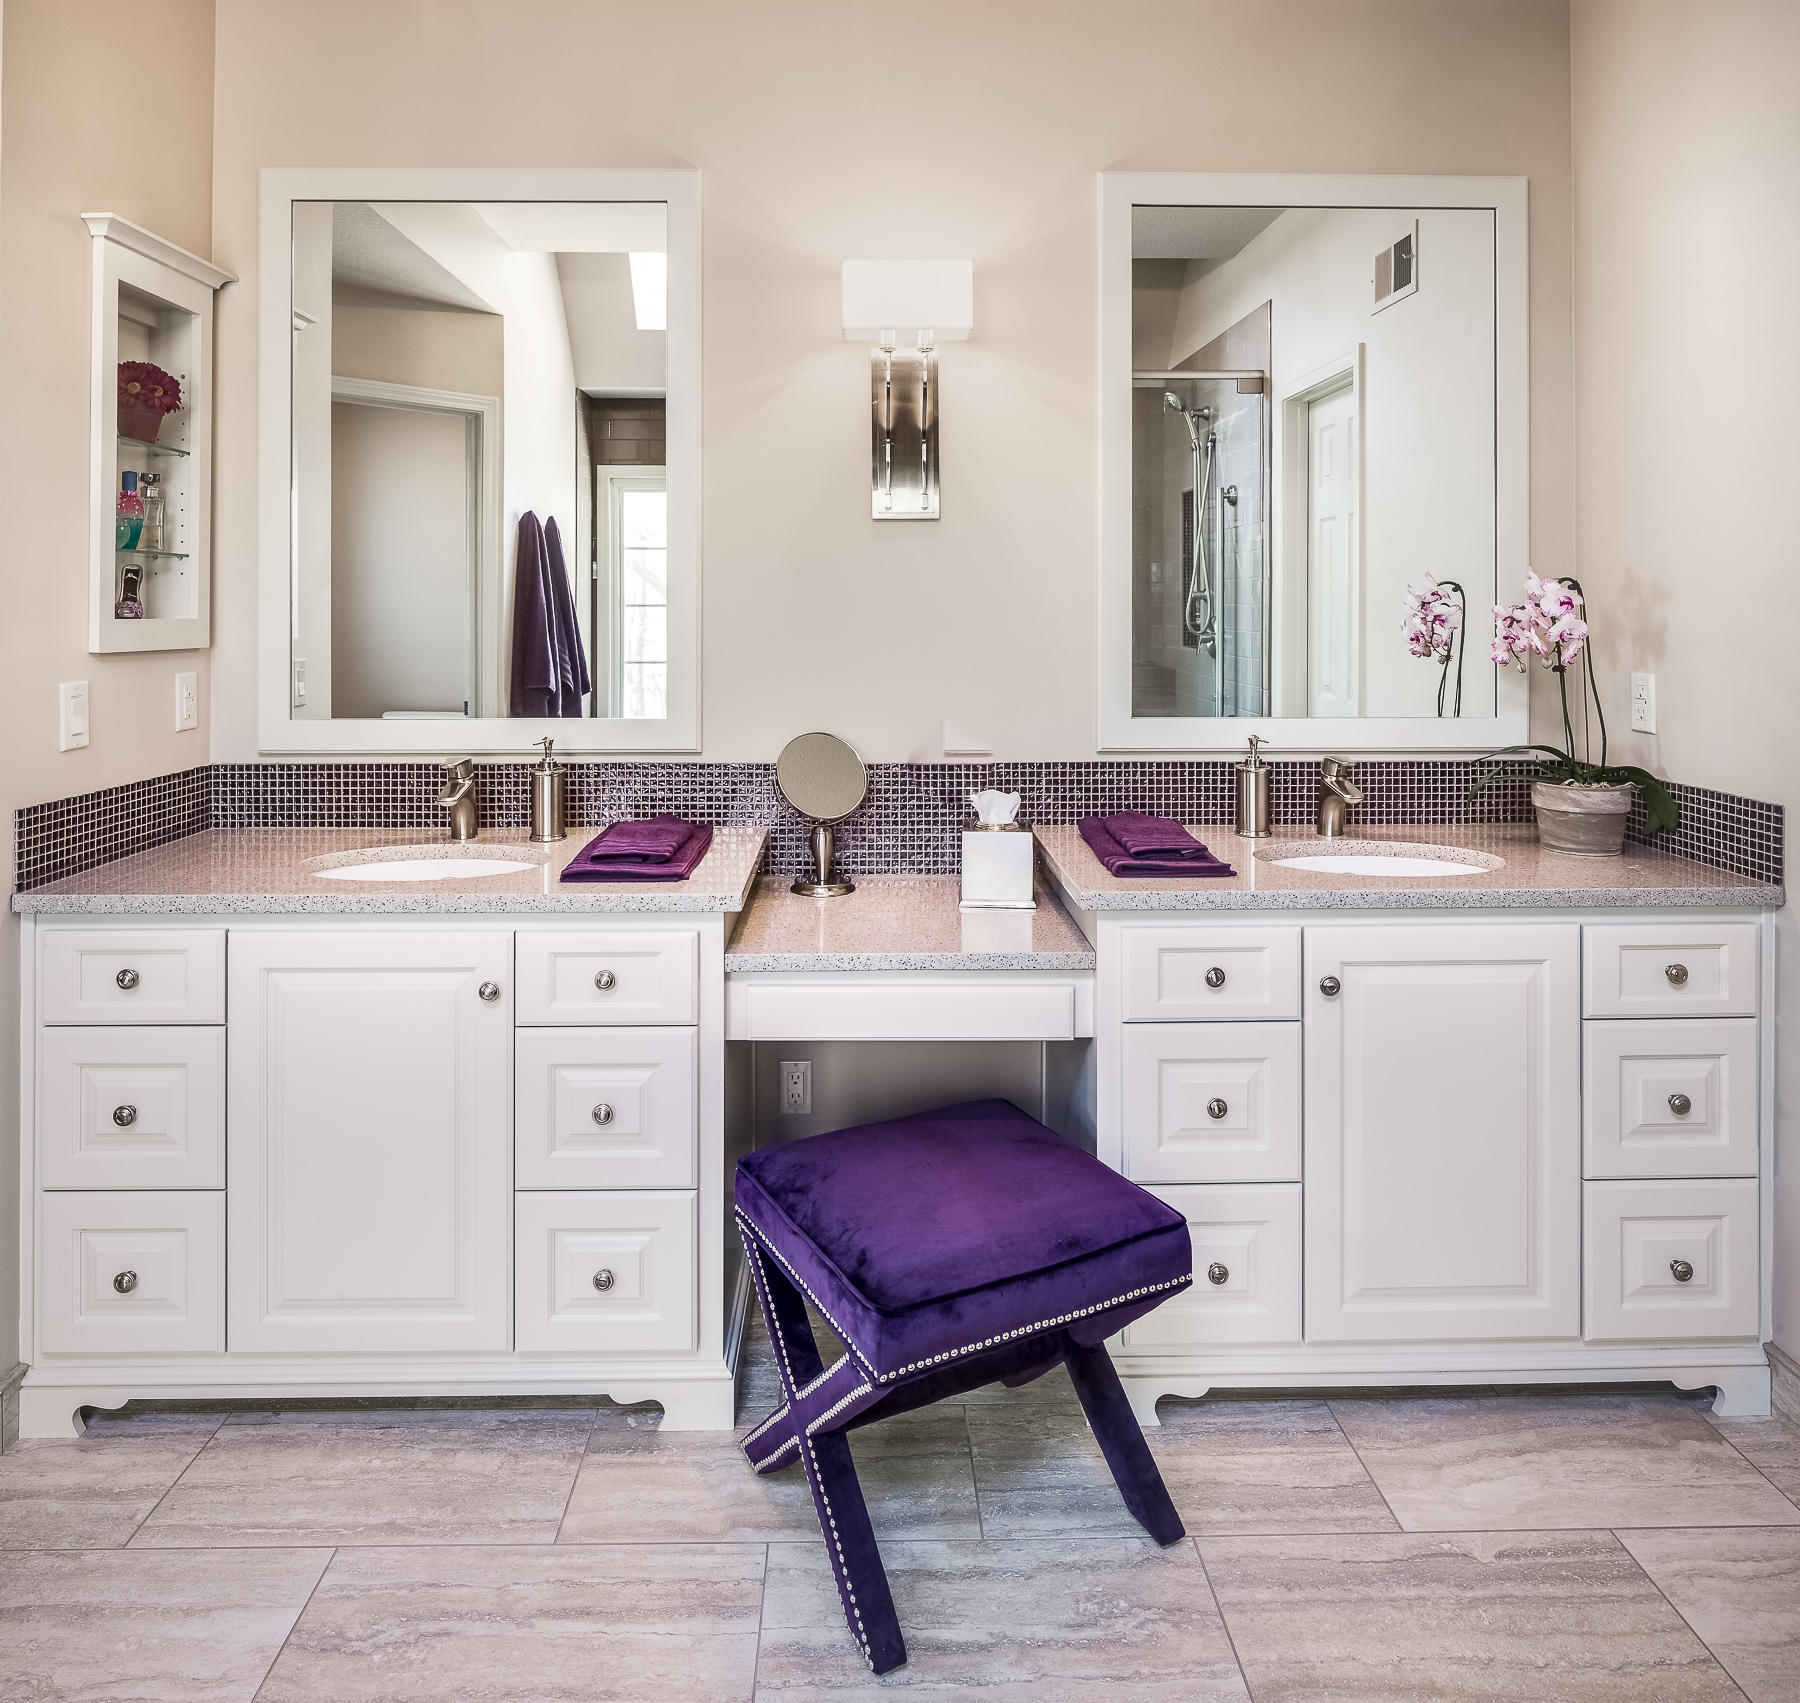 1980's bathroom gets elegant makeover: a design connection, inc